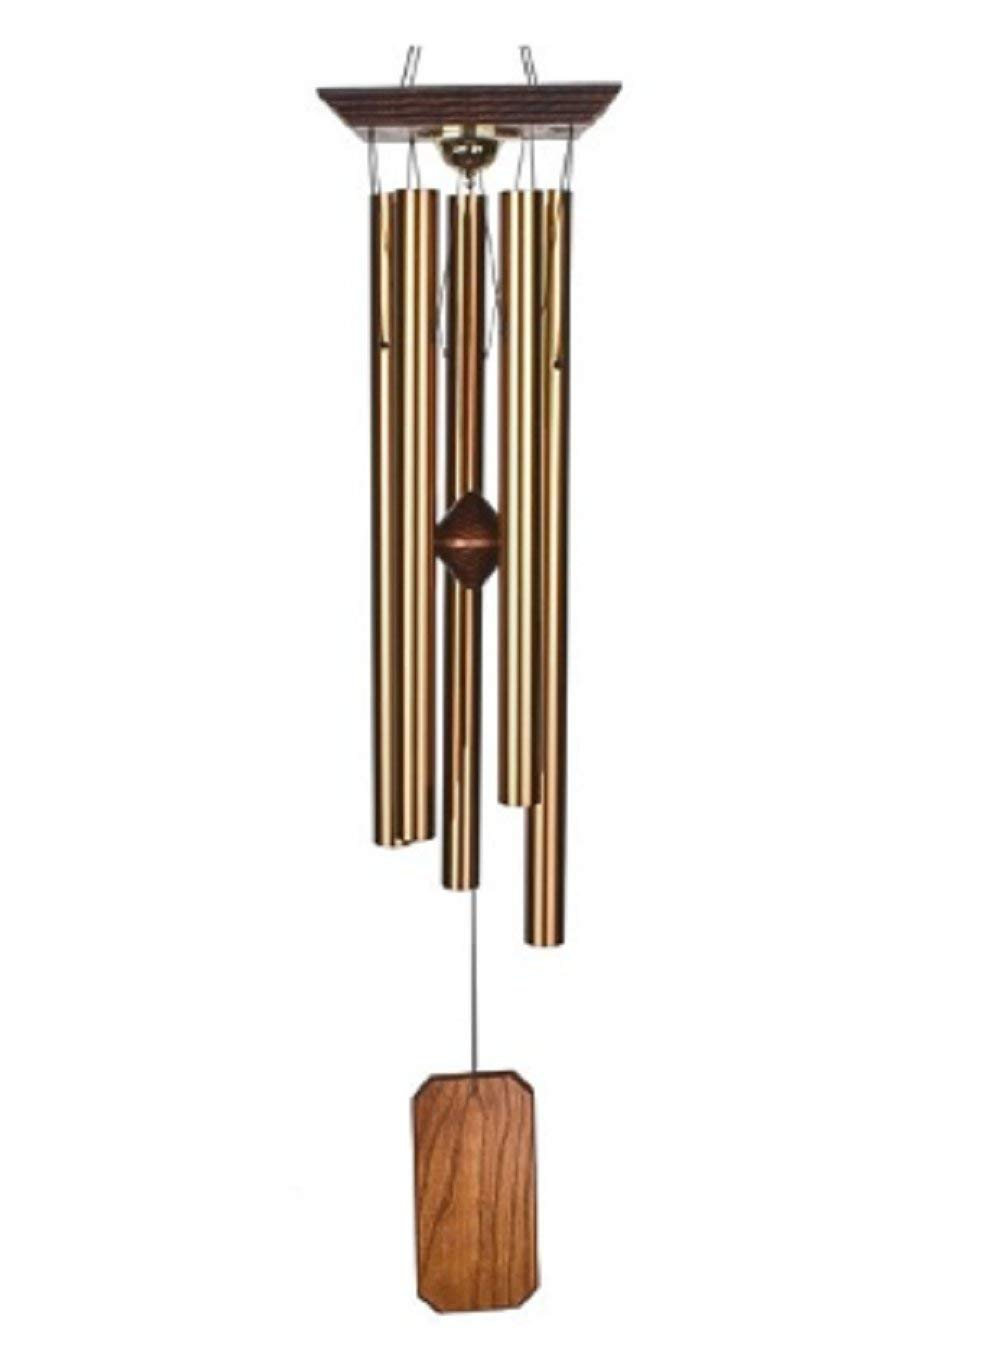 MyEasyShopping Large Bronze Memorial Reflections Chime Outdoor Garden Wind Chime Inspirational Collection Chimes Reflections Urn Bronze Outdoor Garden Wind Hanging Decoration